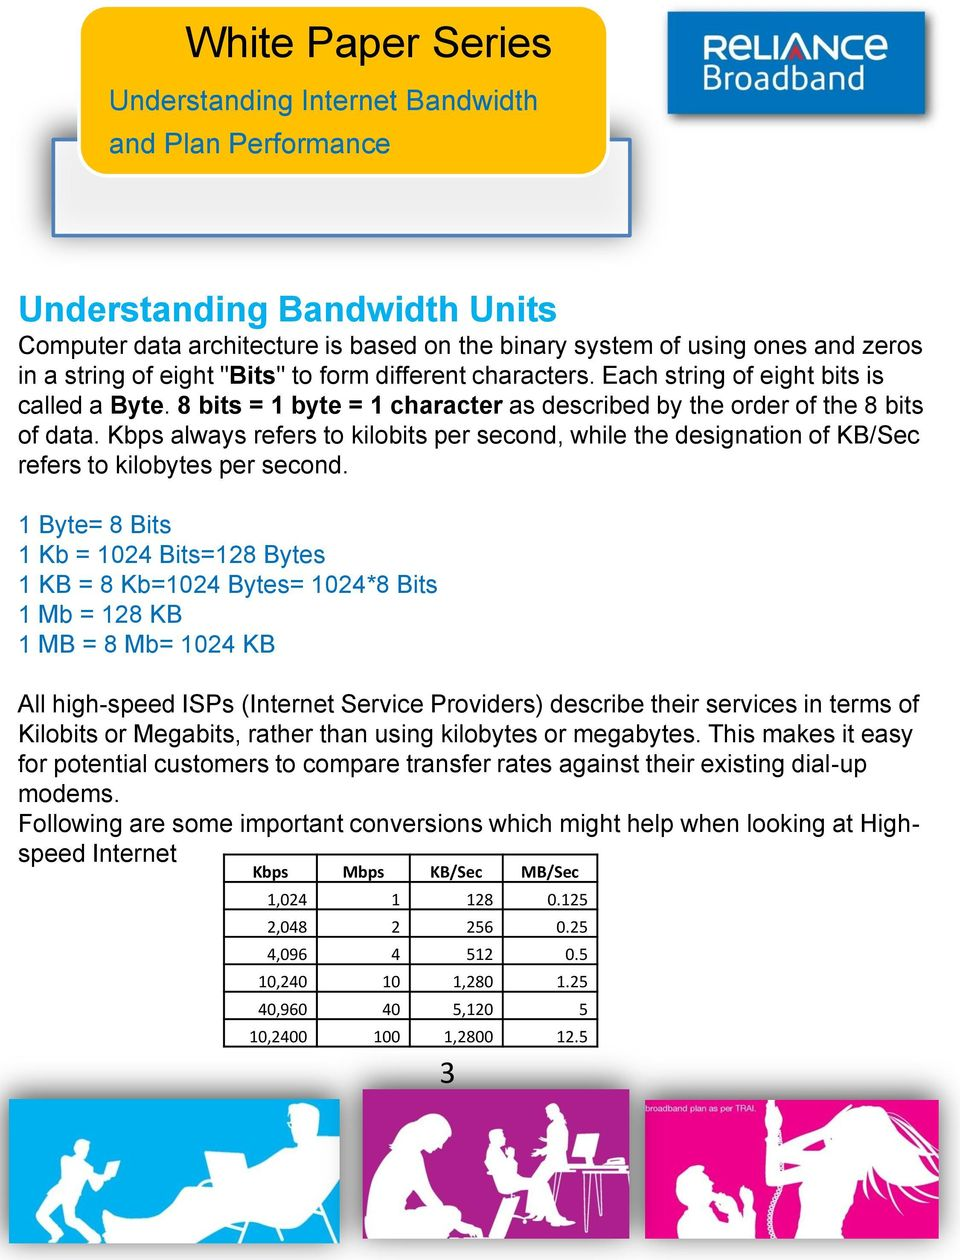 Kbps always refers to kilobits per second, while the designation of KB/Sec refers to kilobytes per second.